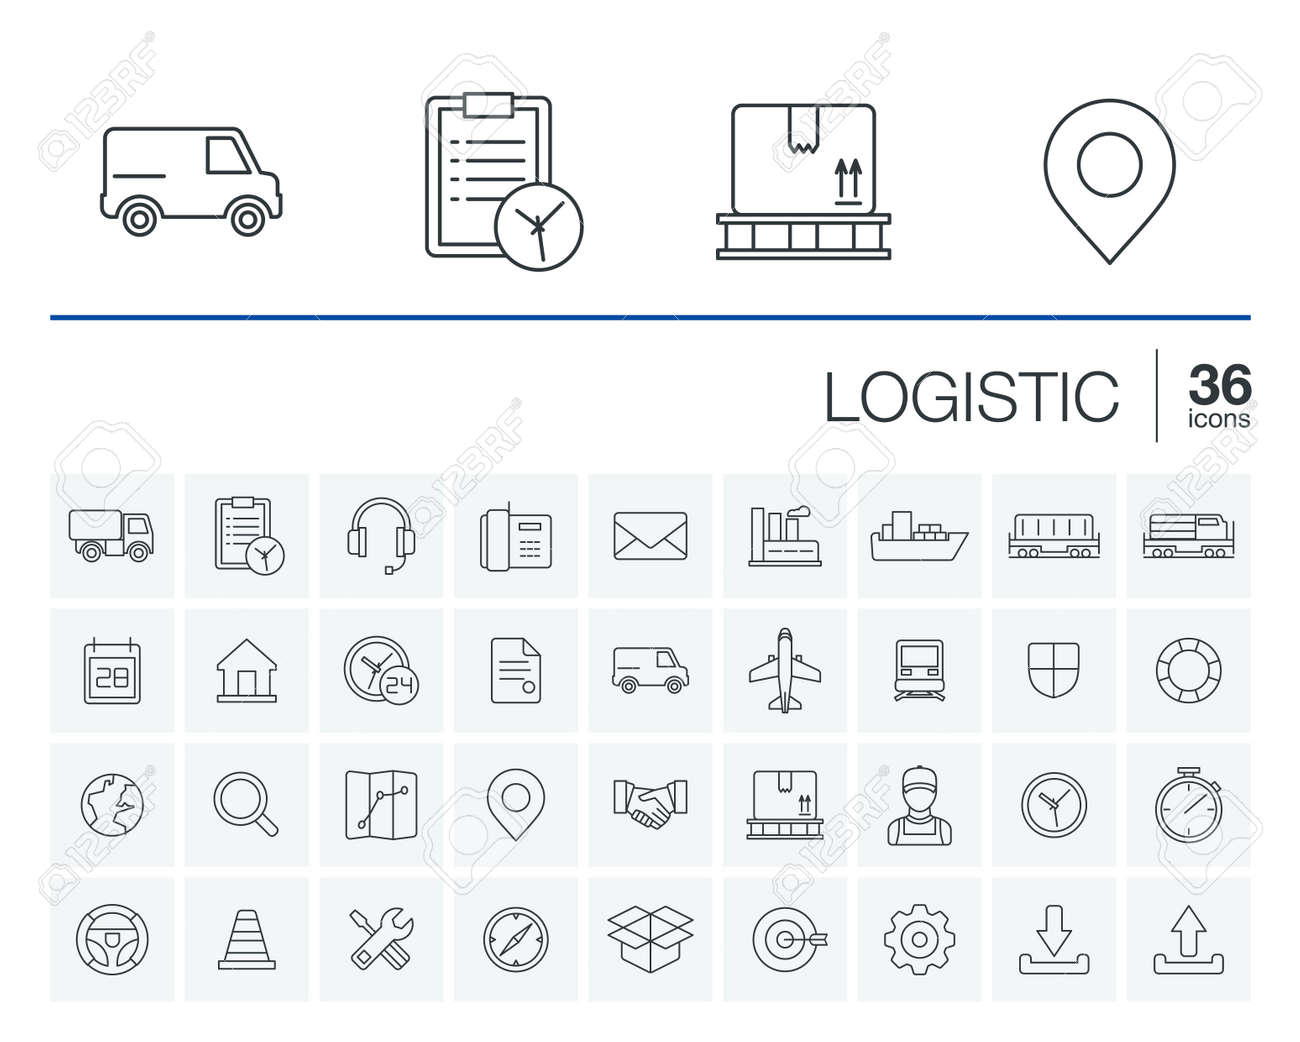 thin line rounded icons set and graphic design elements. Illustration with Logistic, delivery business, distribution outline symbols. Service, export, shipping, transport linear pictogram - 53666644